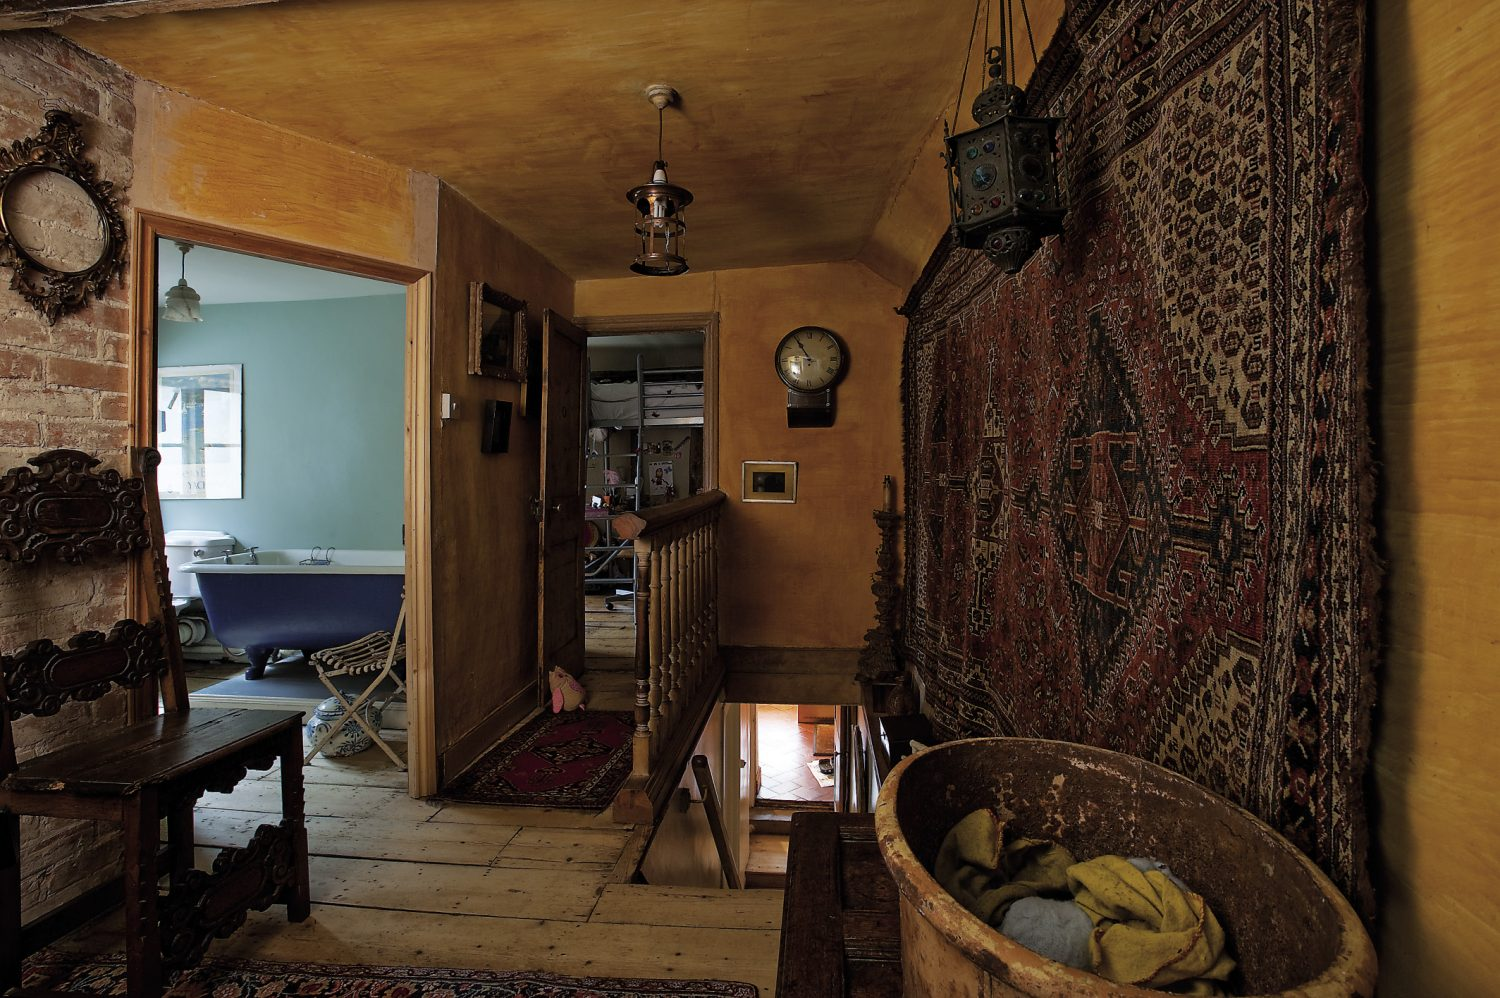 Up a narrow flight of bare pine steps is the landing, where the walls and ceiling have been painted with a rich ochre yellow wash. A rare, 19th century Qashquai rug hangs on the wall